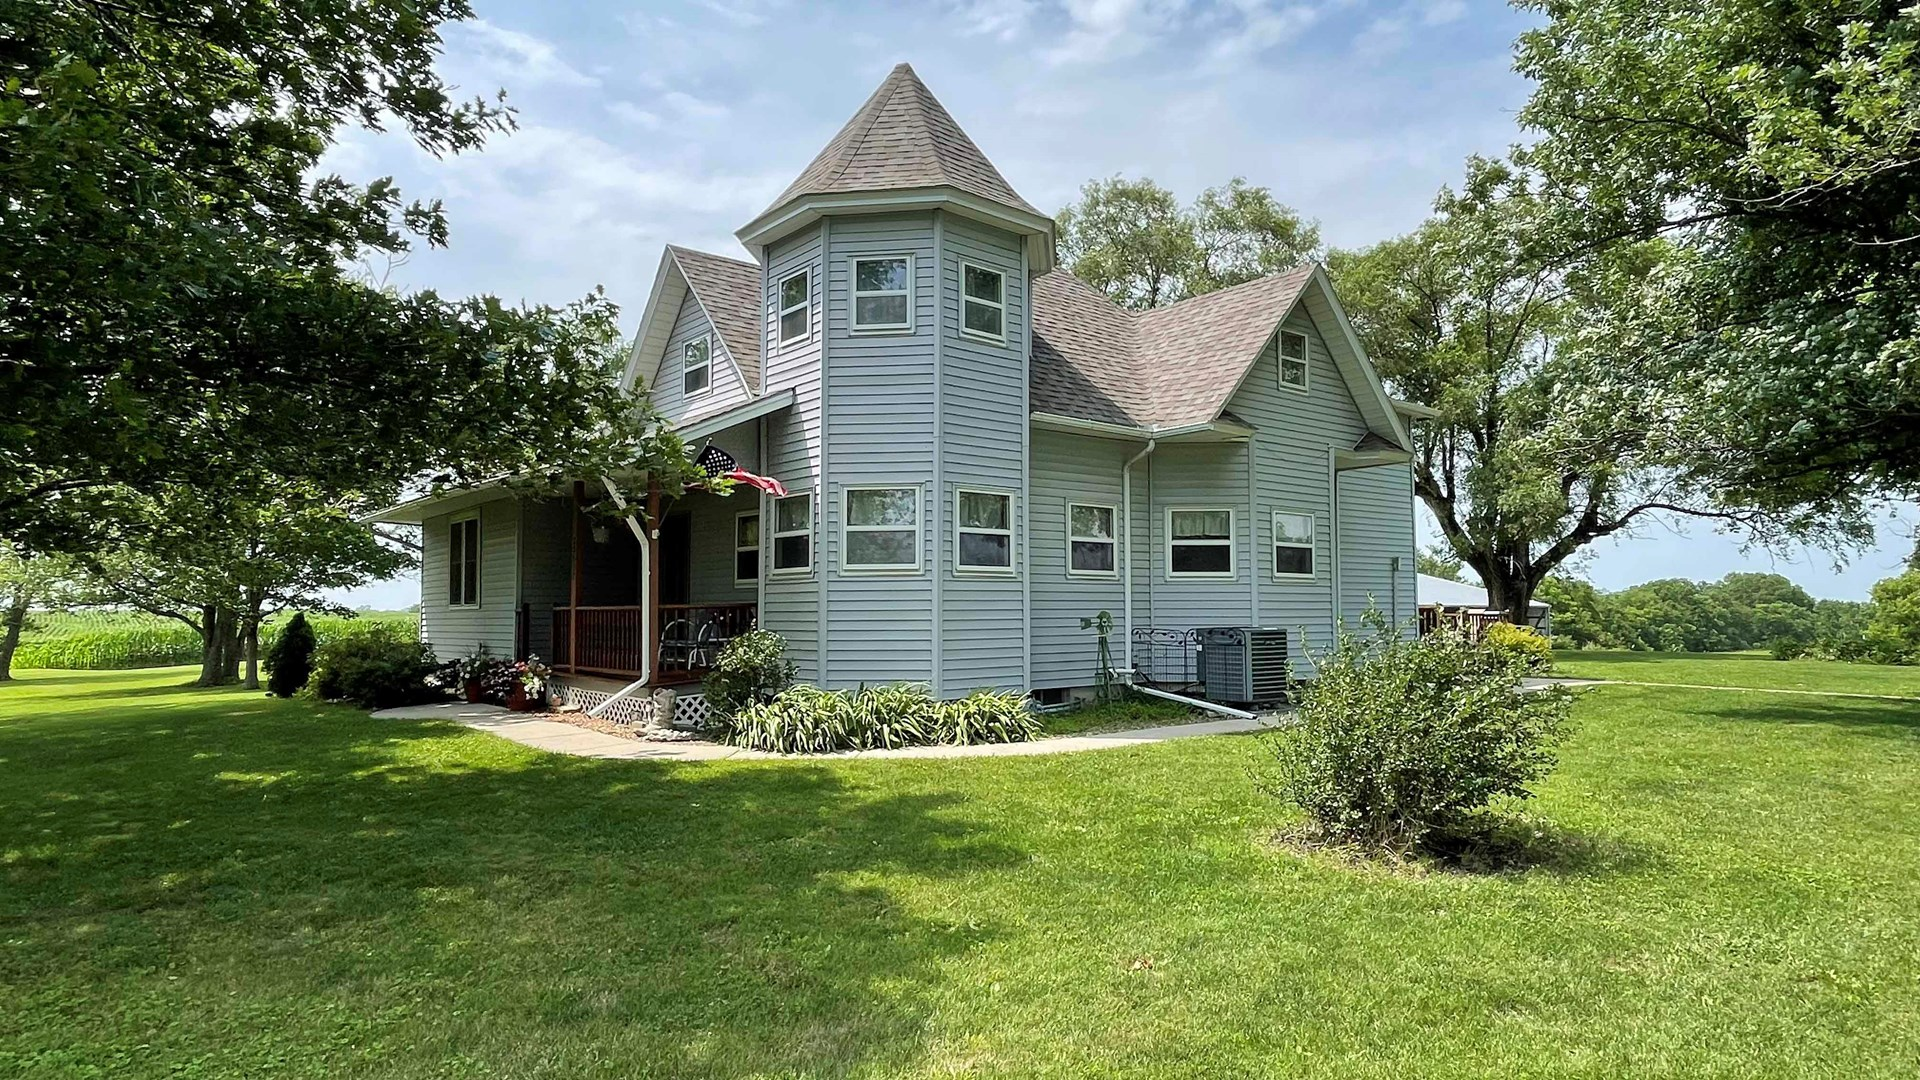 Country Home on 10 Acres in NW Missouri